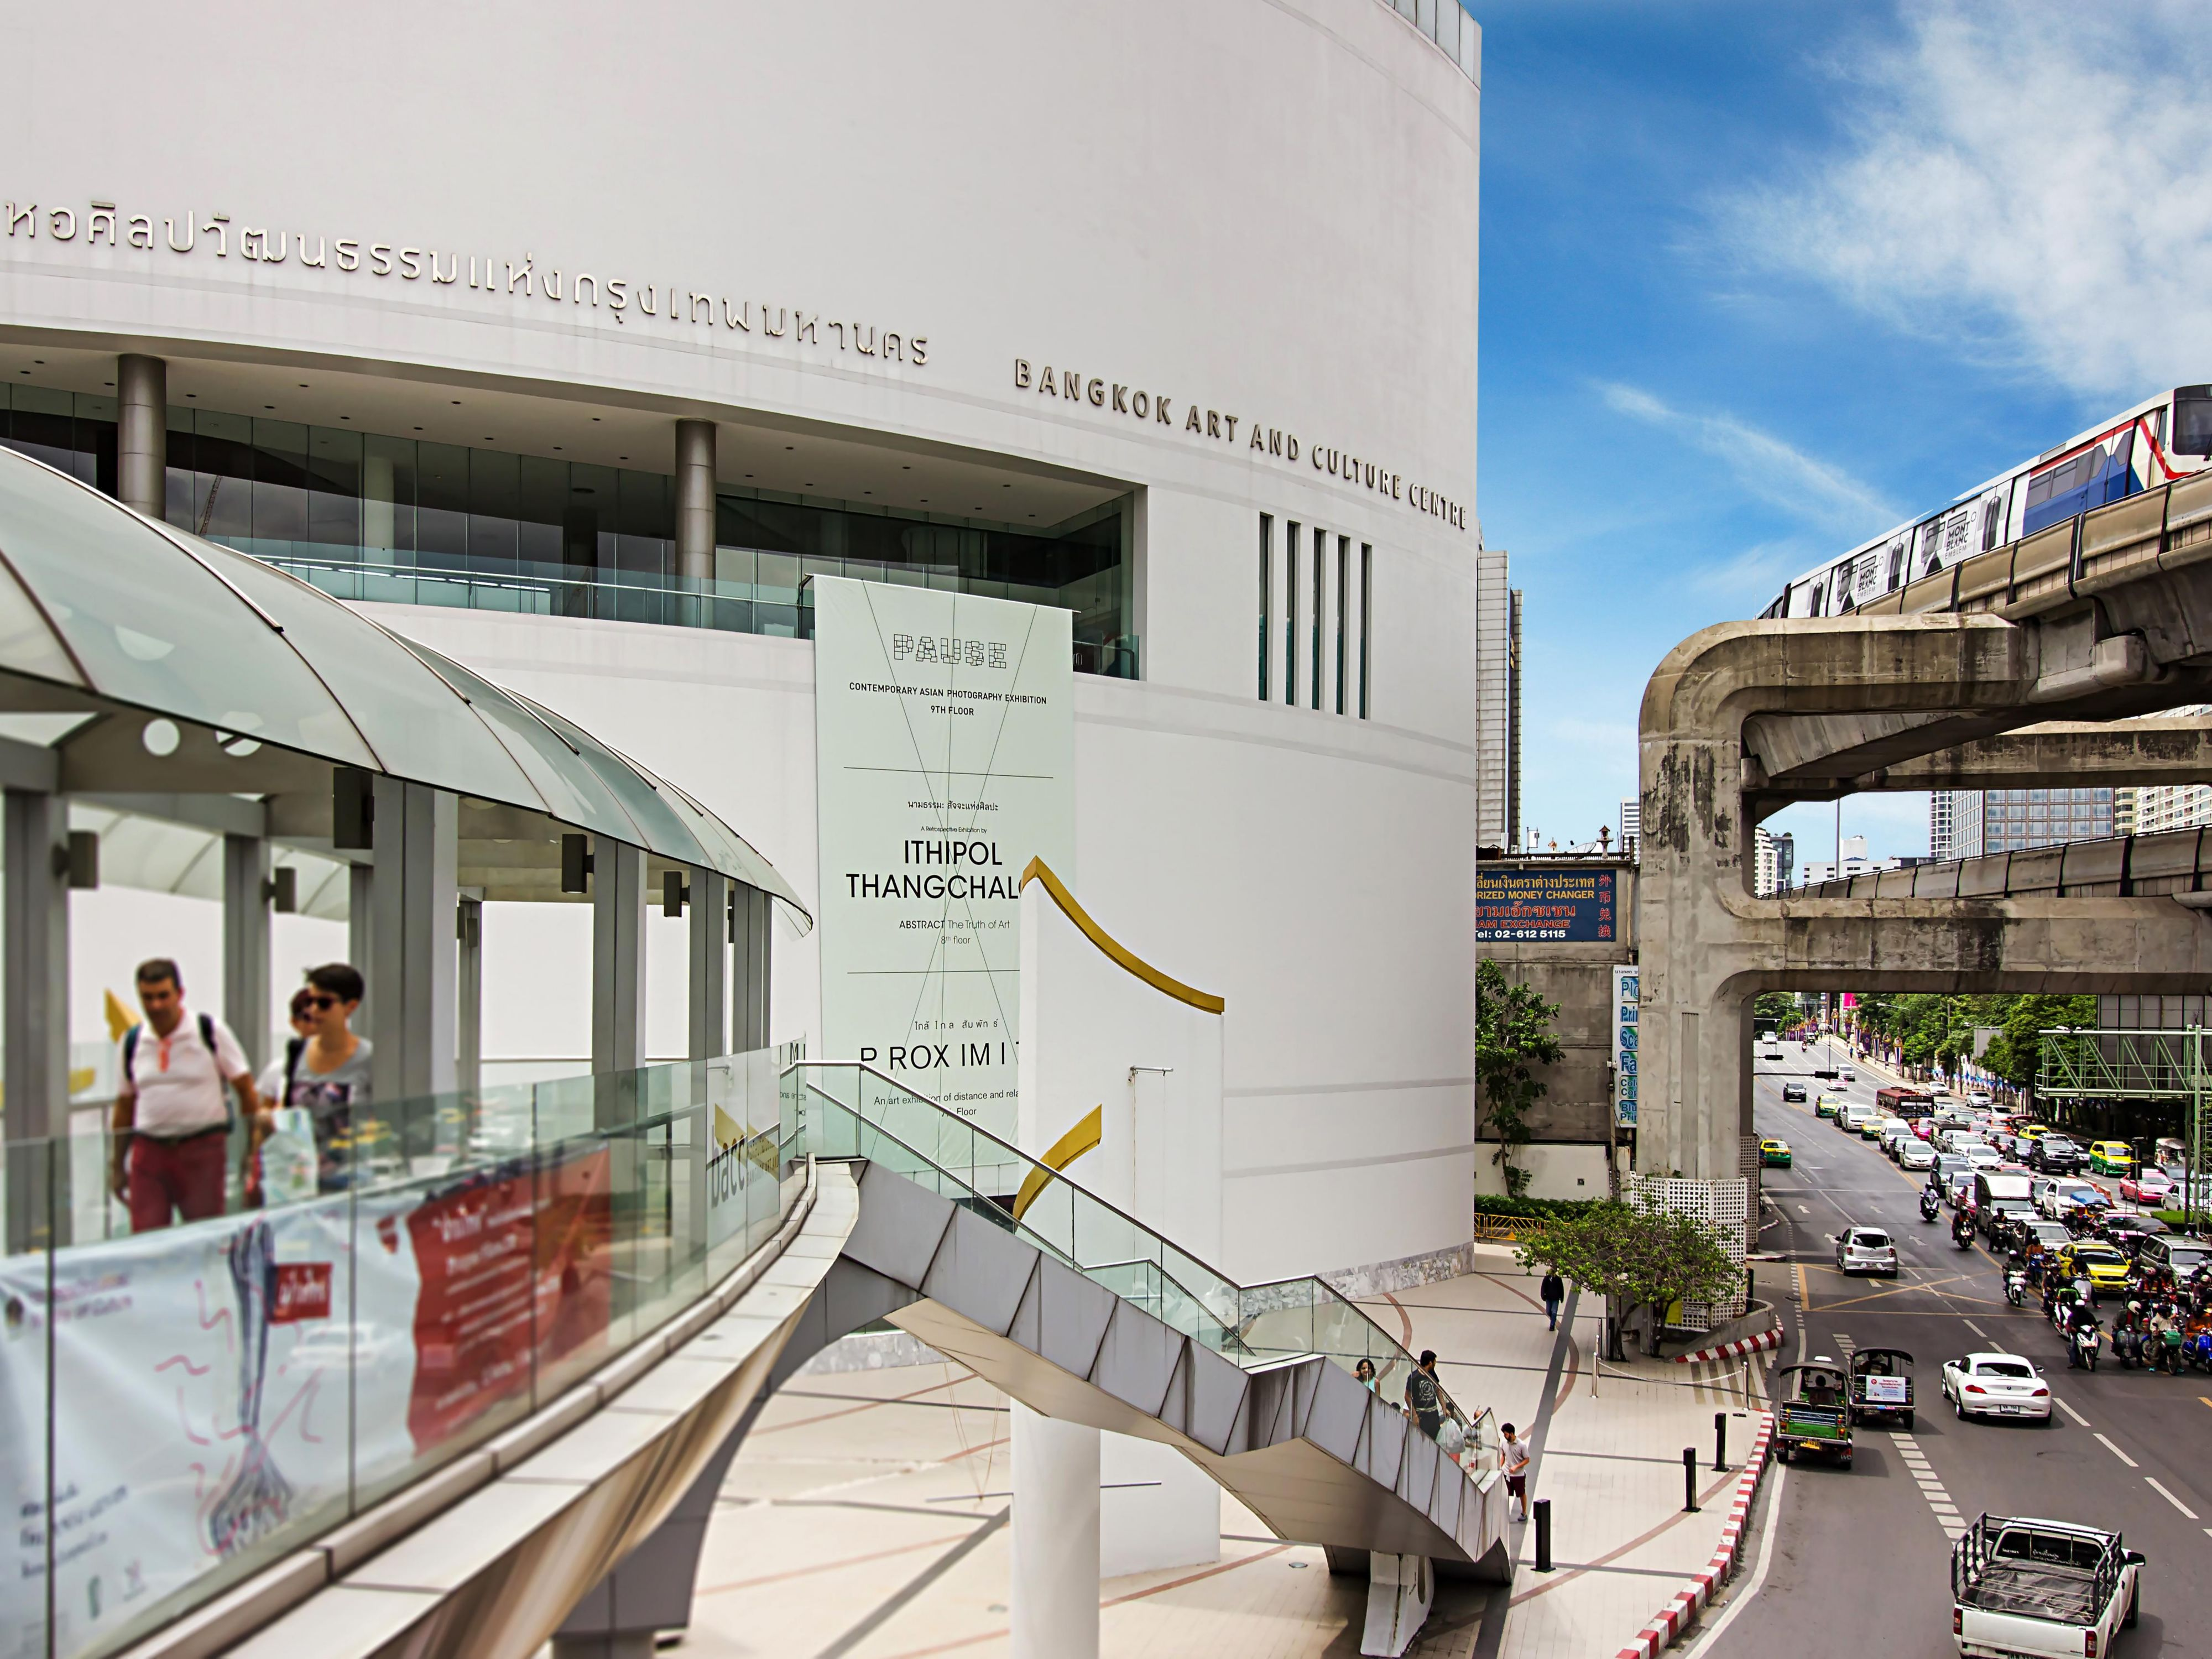 Bangkok Art and Culture Center-within walking distance from hotel